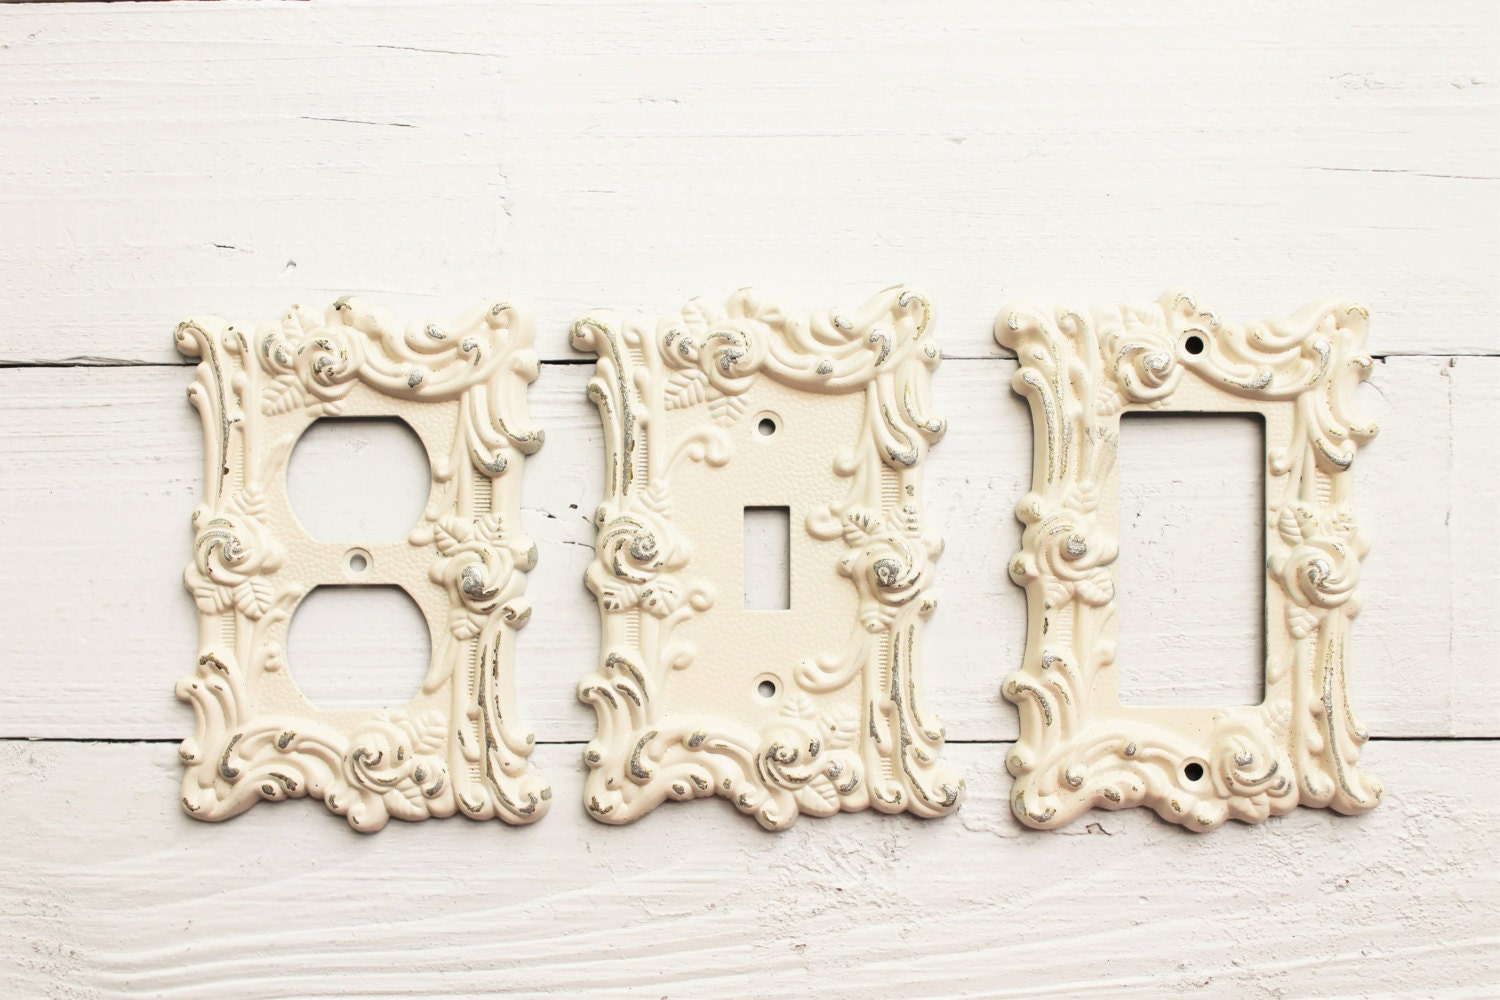 Decorative Wall Plates For Light Switches Endearing Metal Wall Decor Light Switch Cover Creamy Off White Rocker Decorating Design